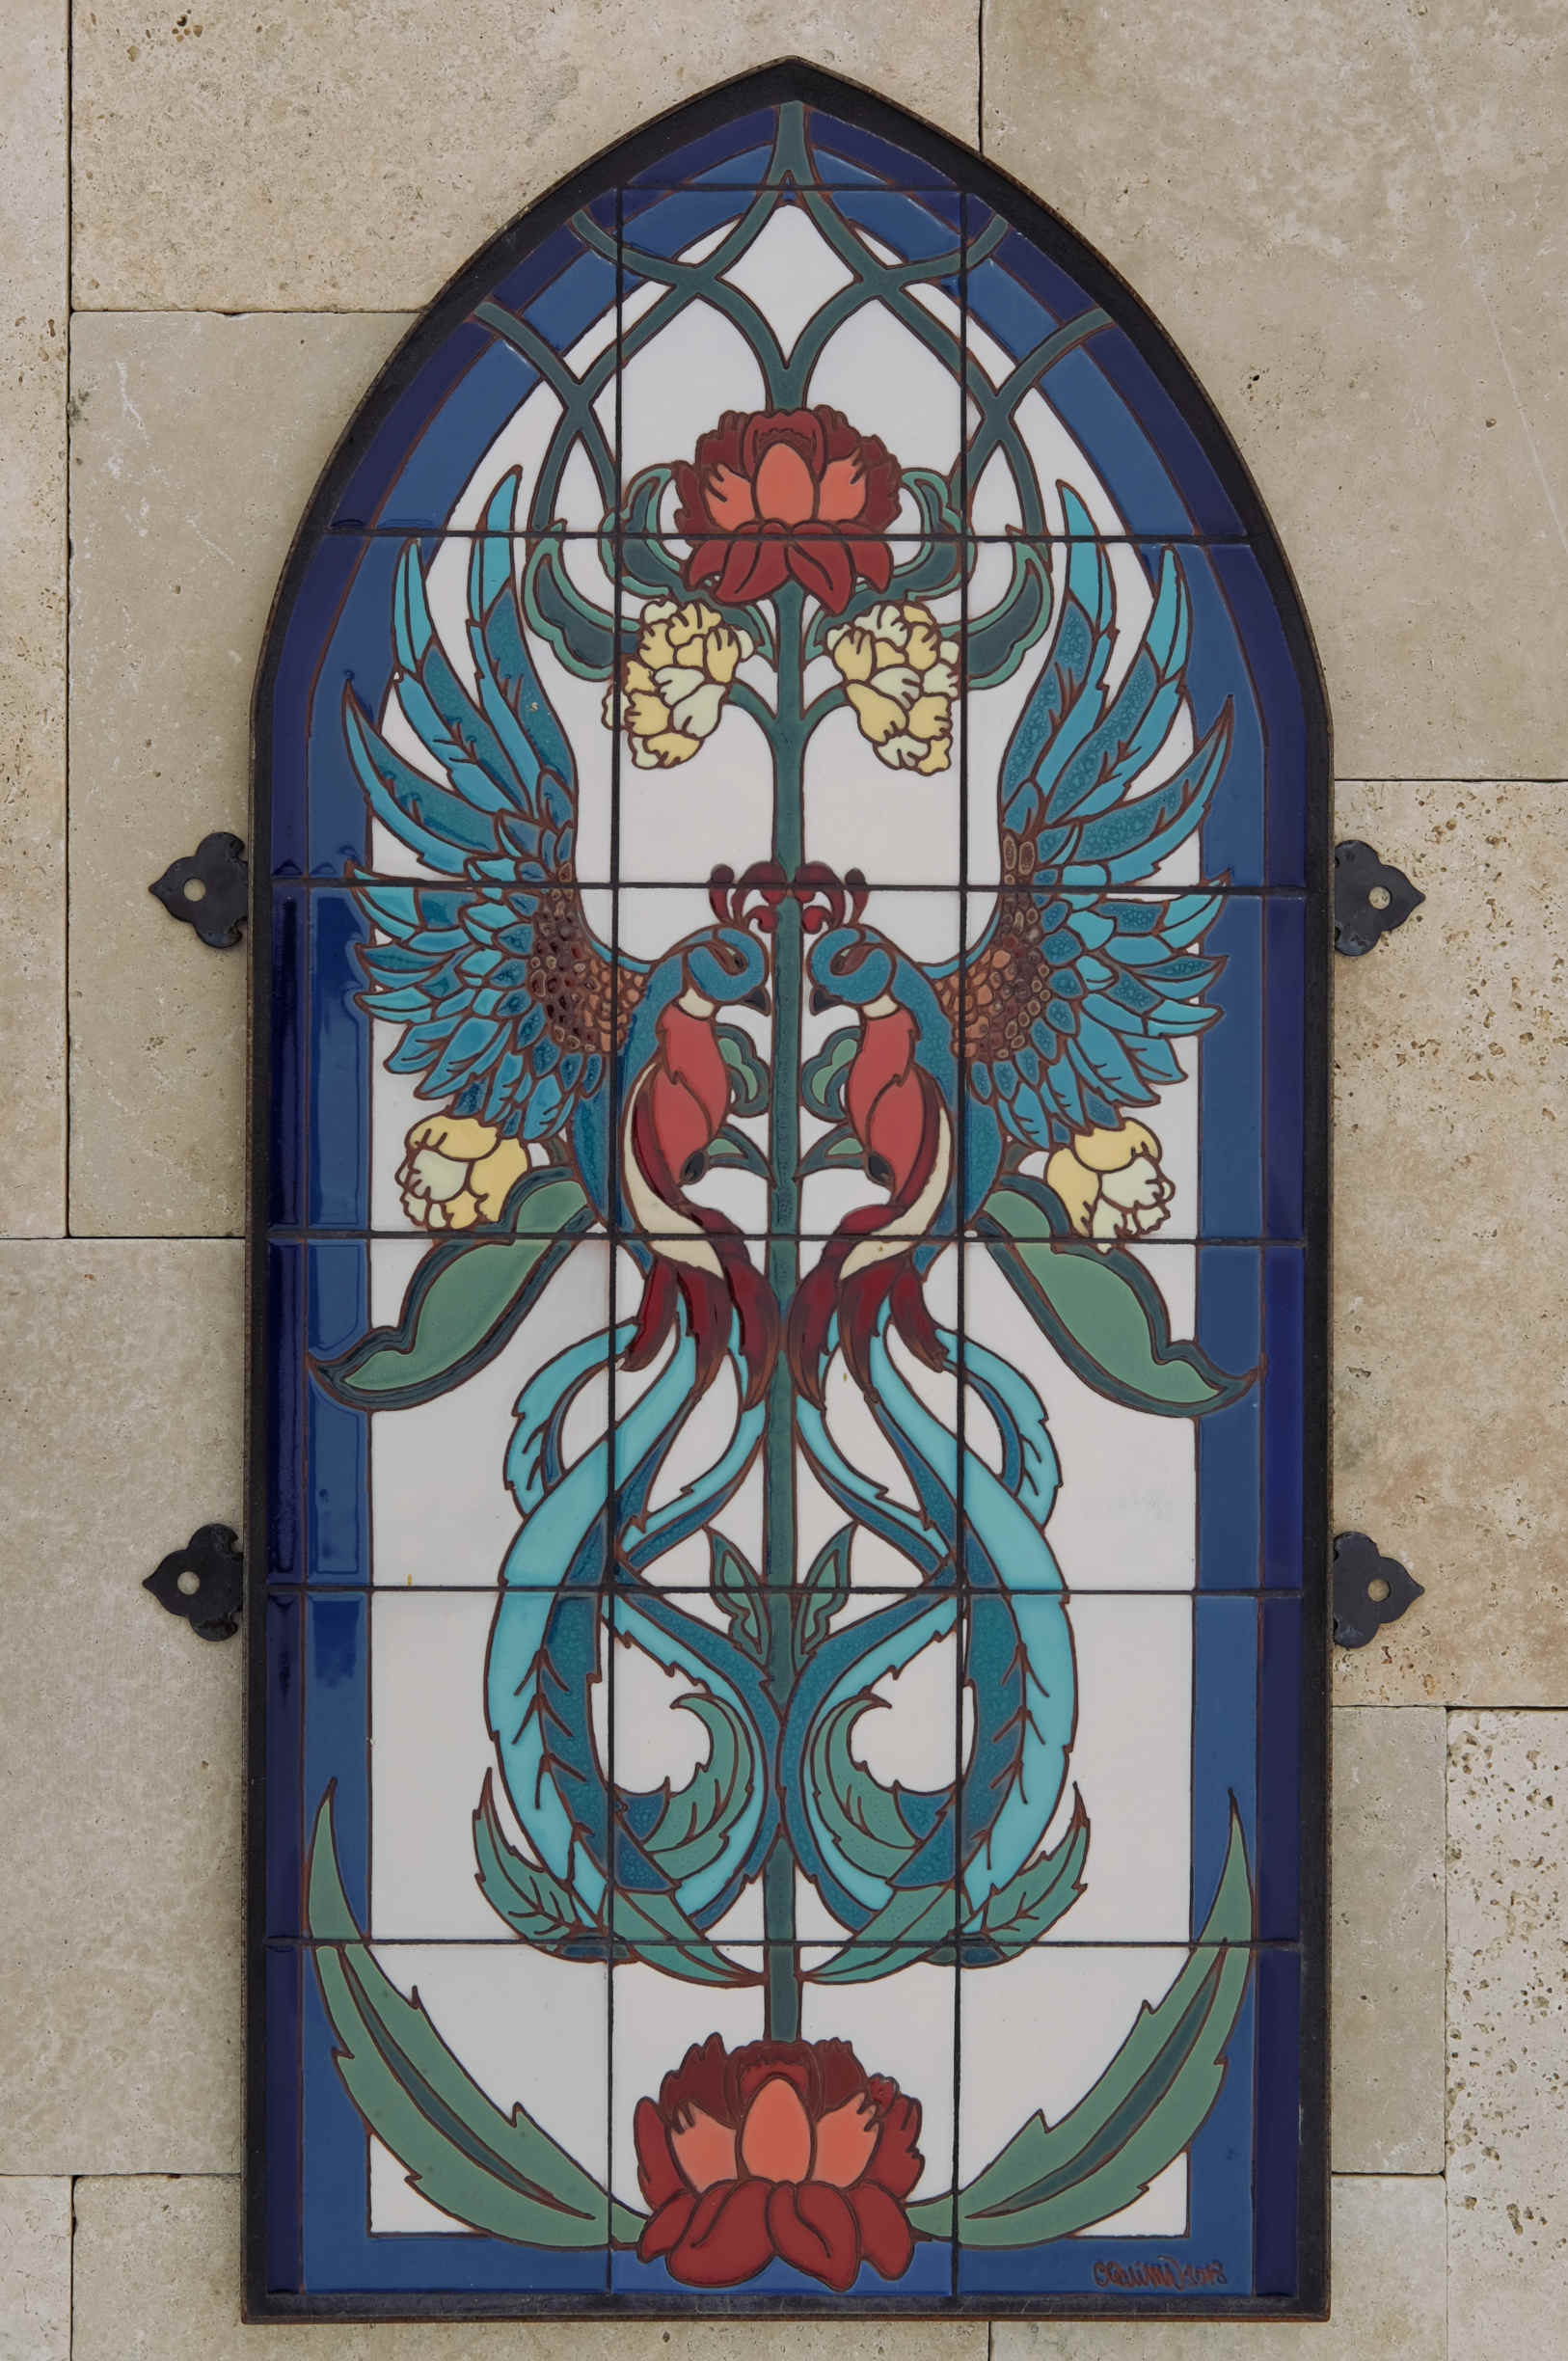 Gothic firebird exterior tile mural with Moorish arch in Spanish Colonial or Mediterranean style